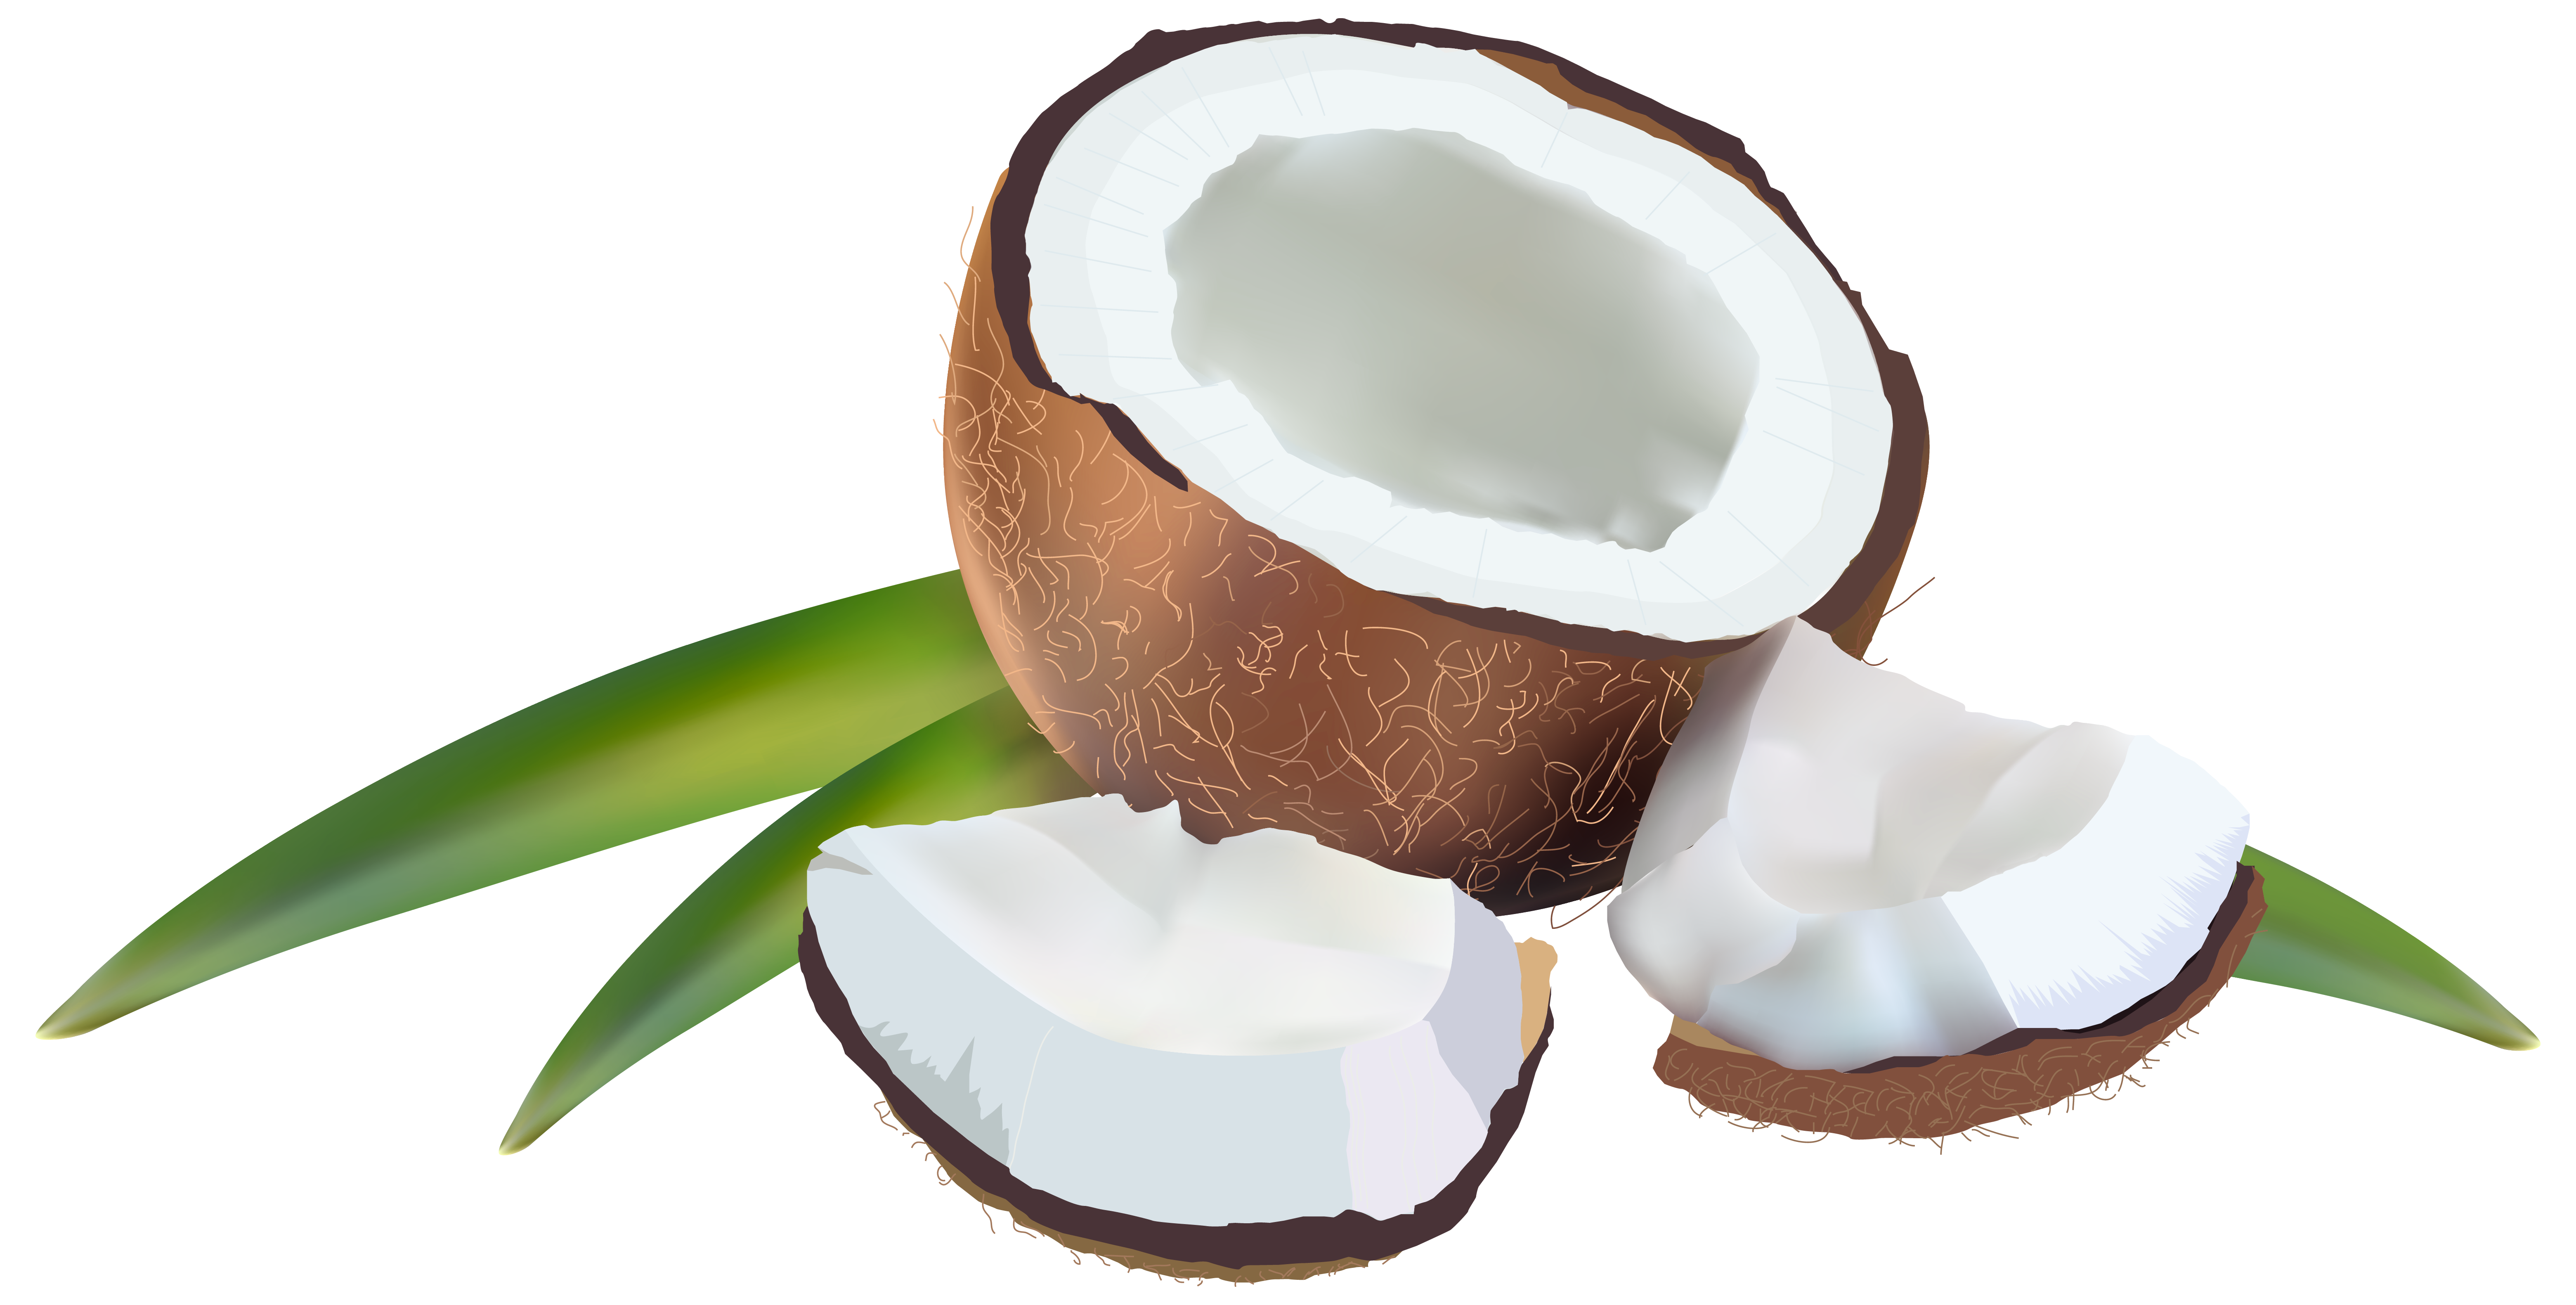 Coconut clipart transparent background. With leaves png image